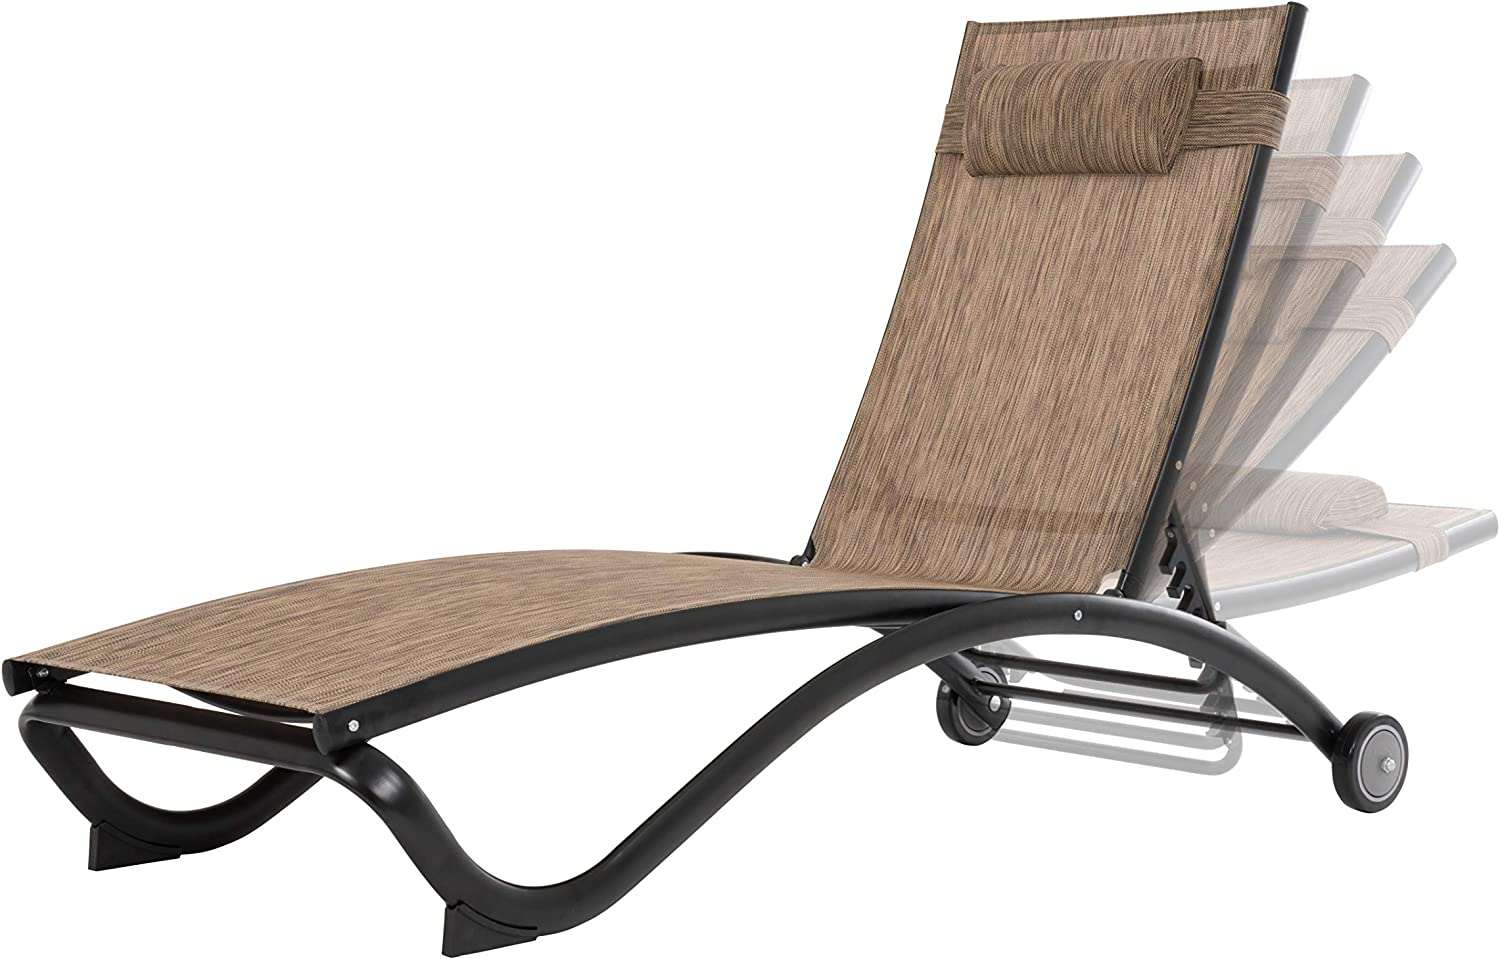 Vivere Glendale Adjustable Aluminum Lounger, Granite